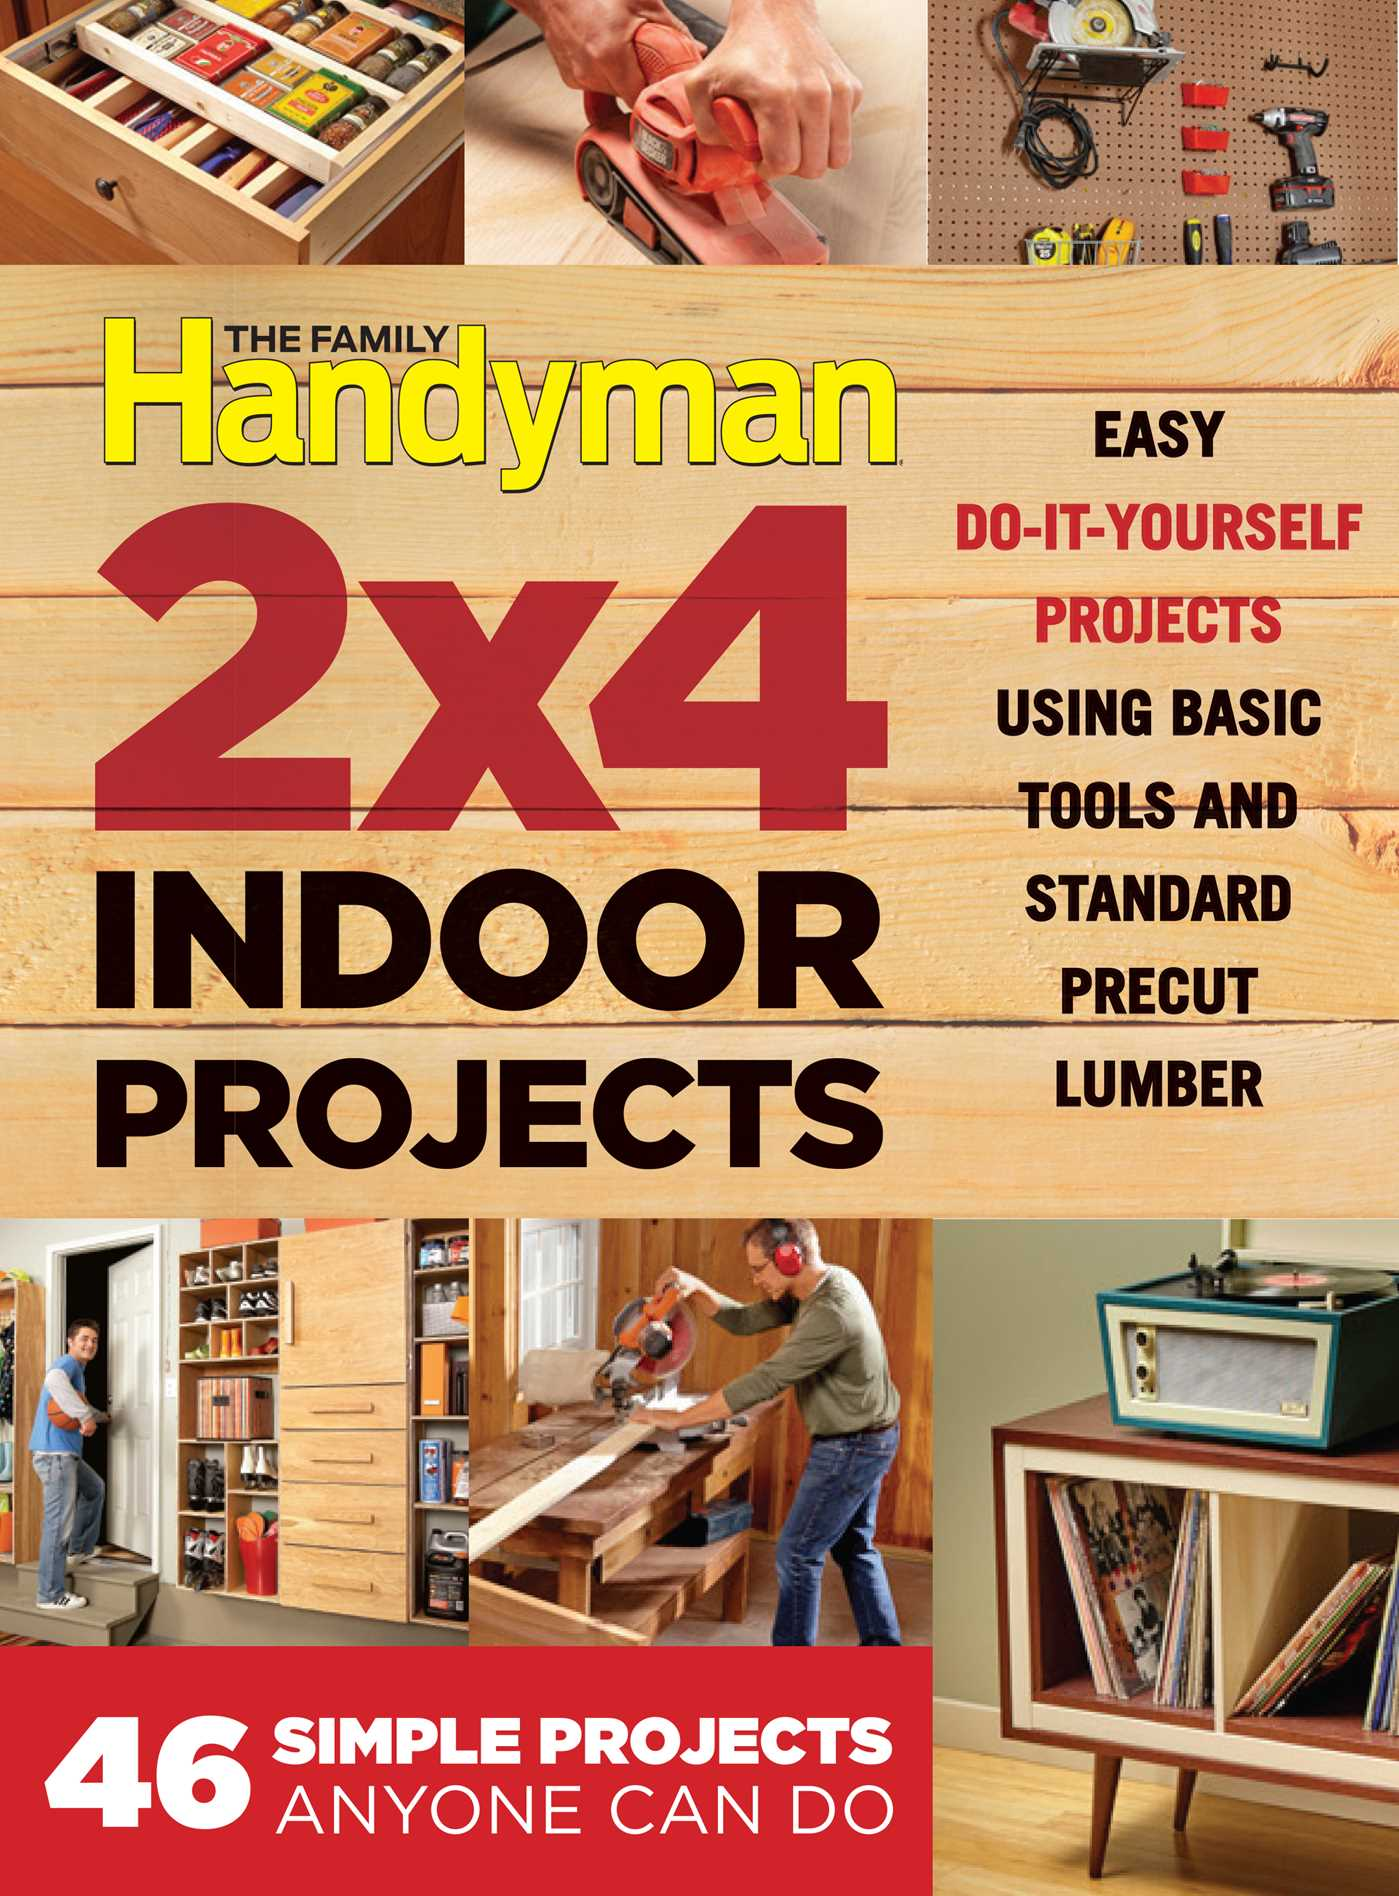 The family handyman 2 x 4 indoor projects 9781621453093 hr